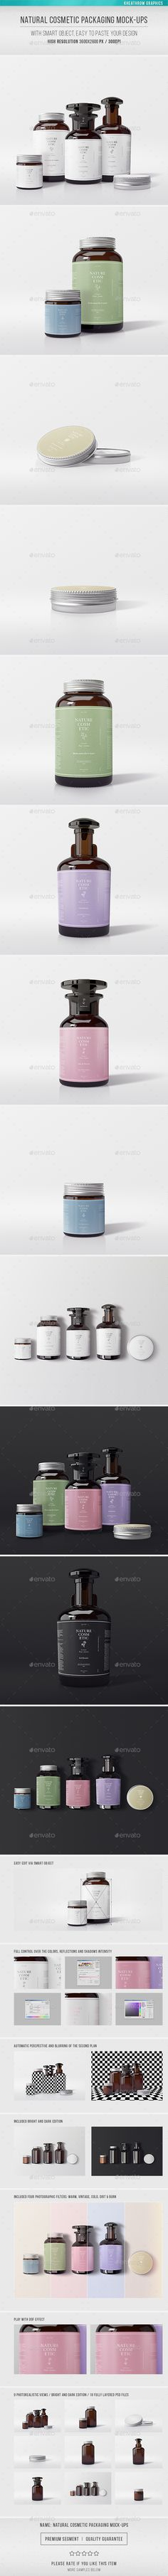 Natural Cosmetic Packaging Mock-Ups | GraphicRiver